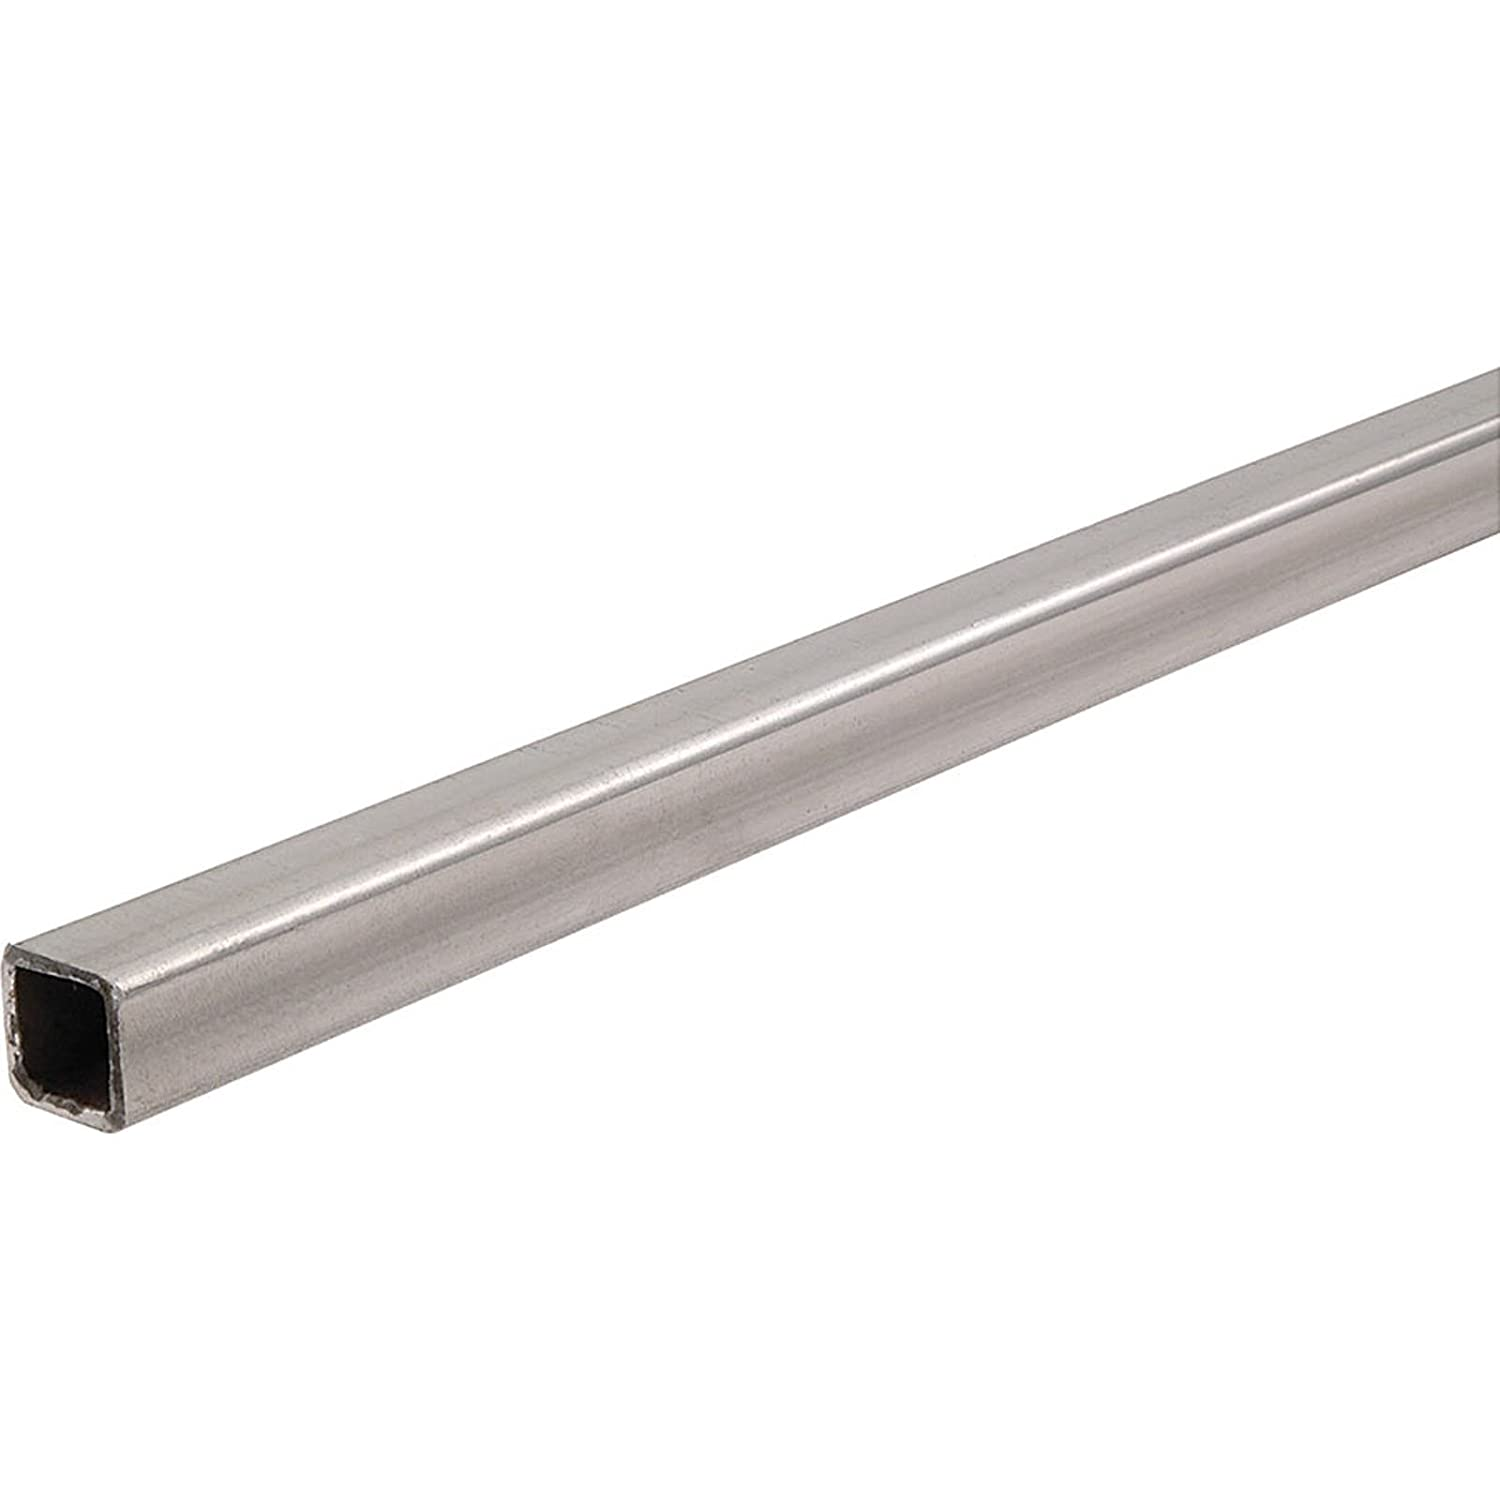 Allstar Performance 3/4 in Square Steel tubing 4 ft P/N 22163-4